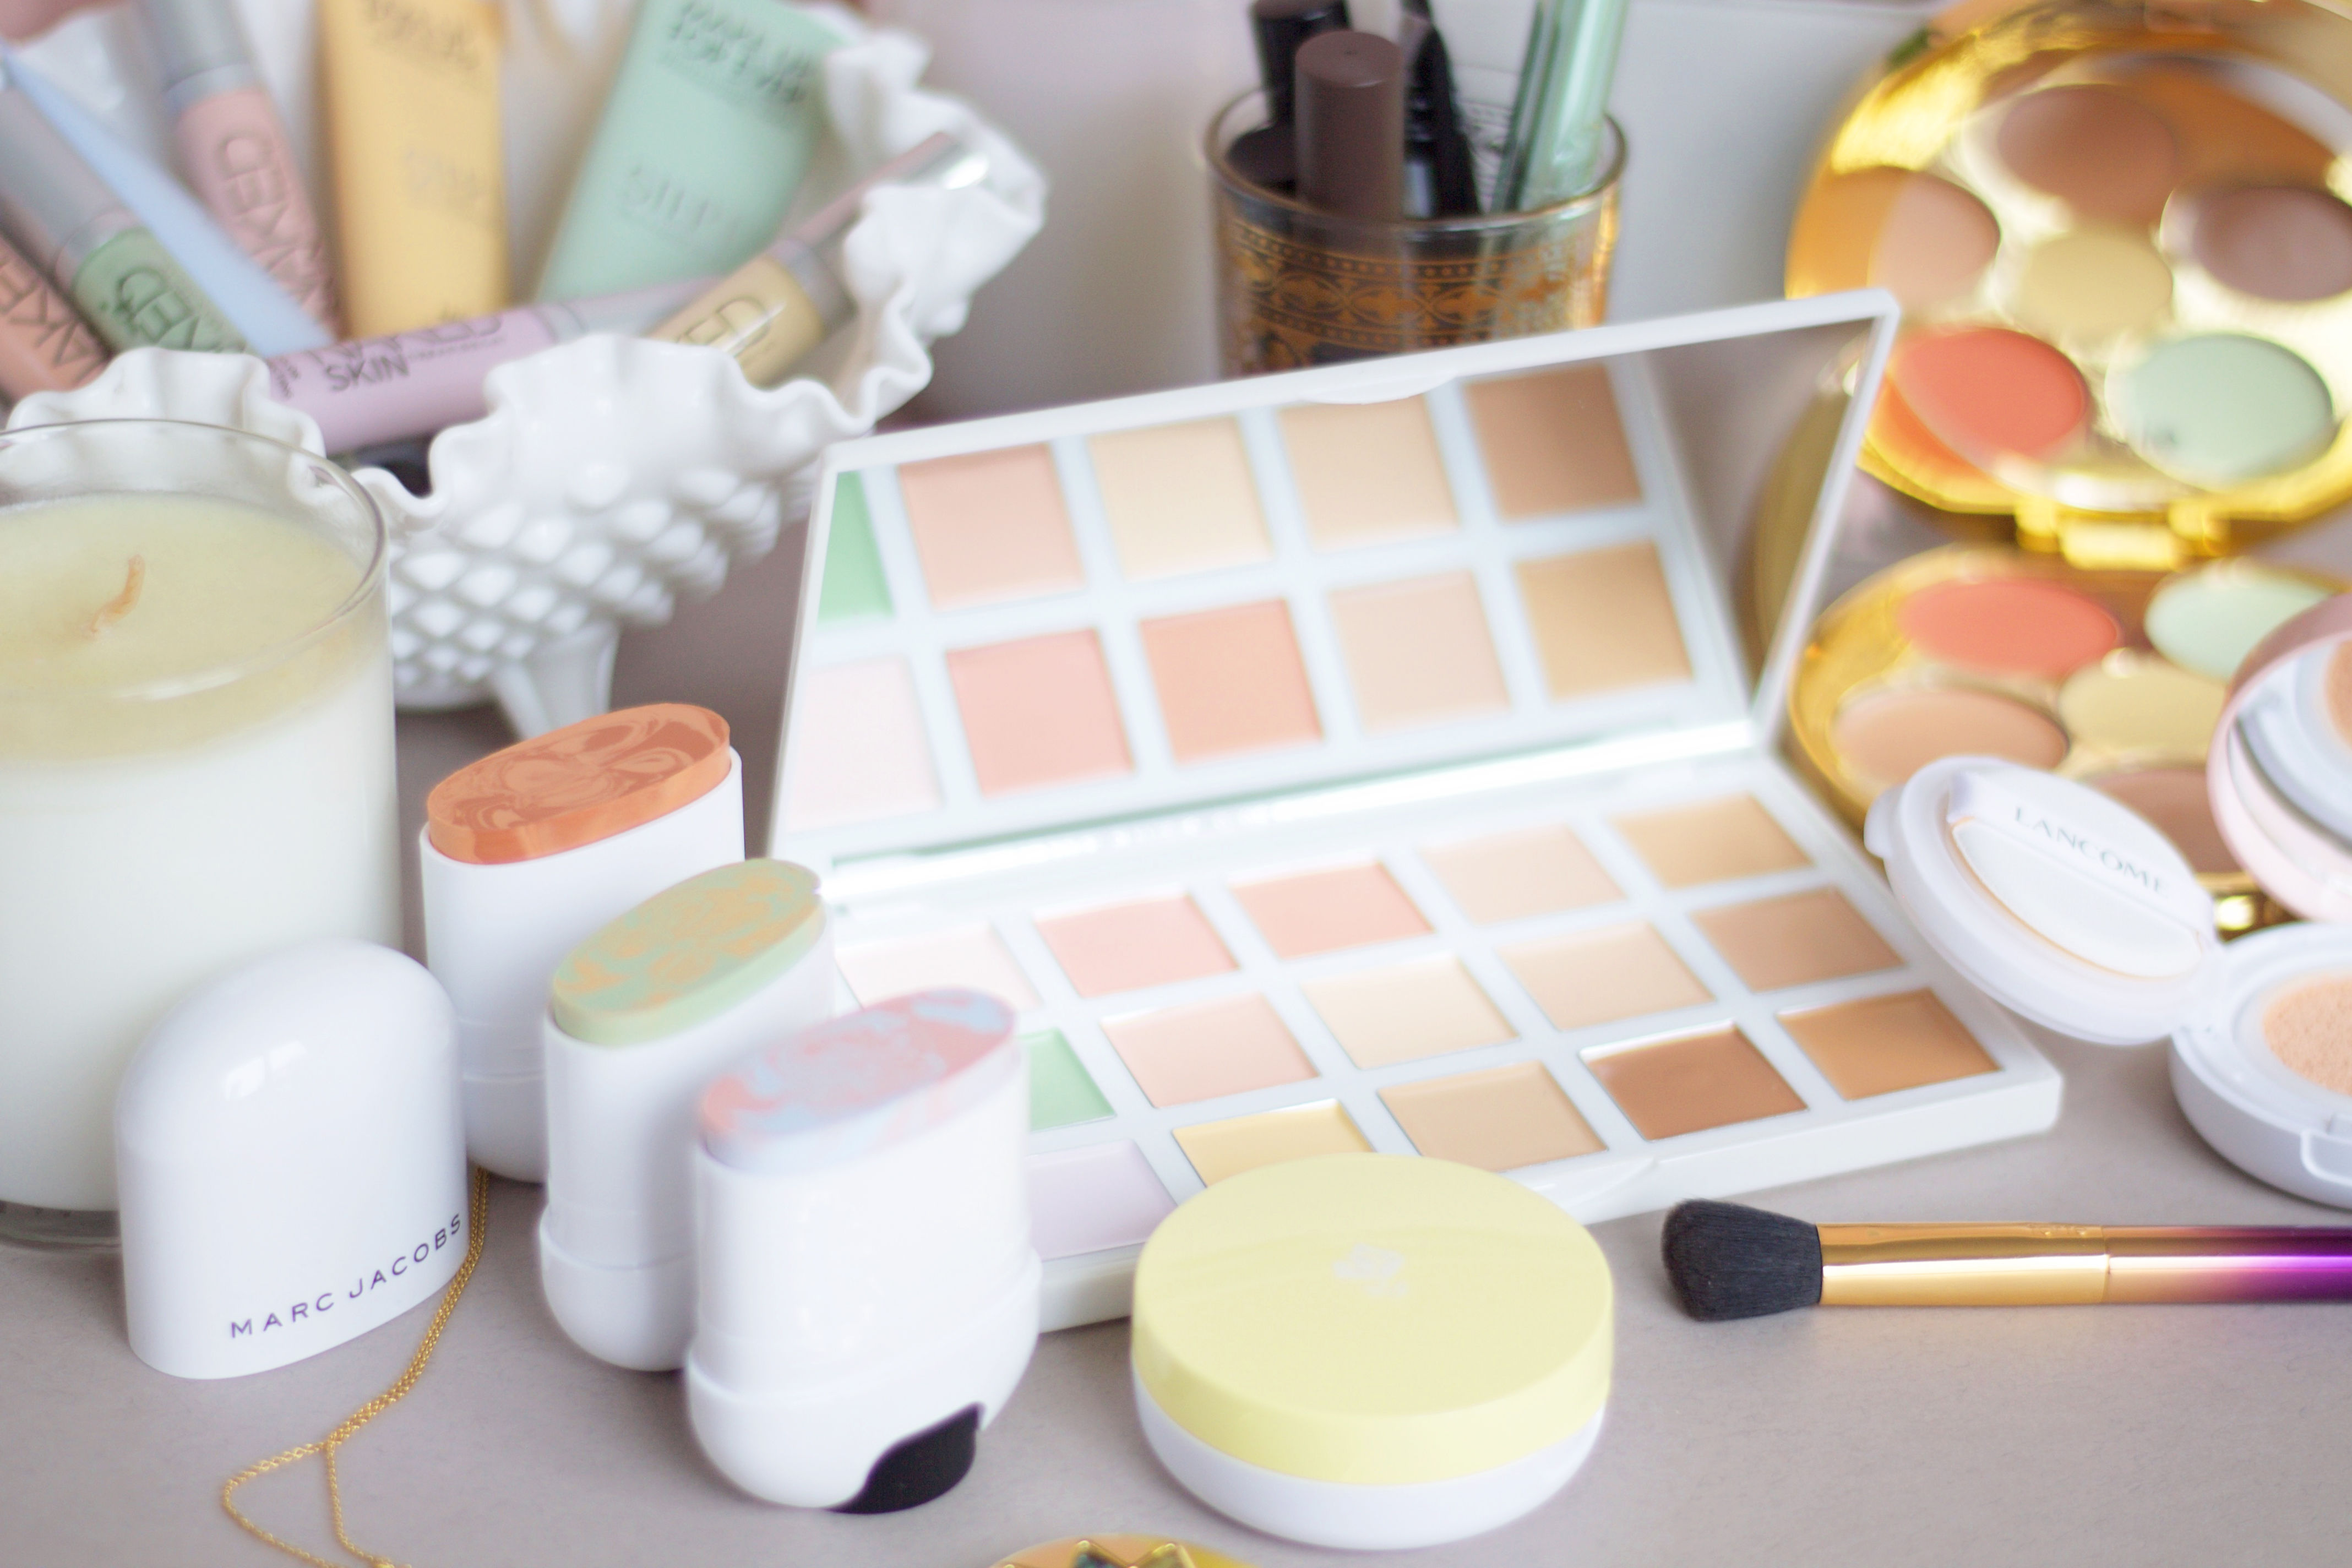 How to apply colour correction makeup